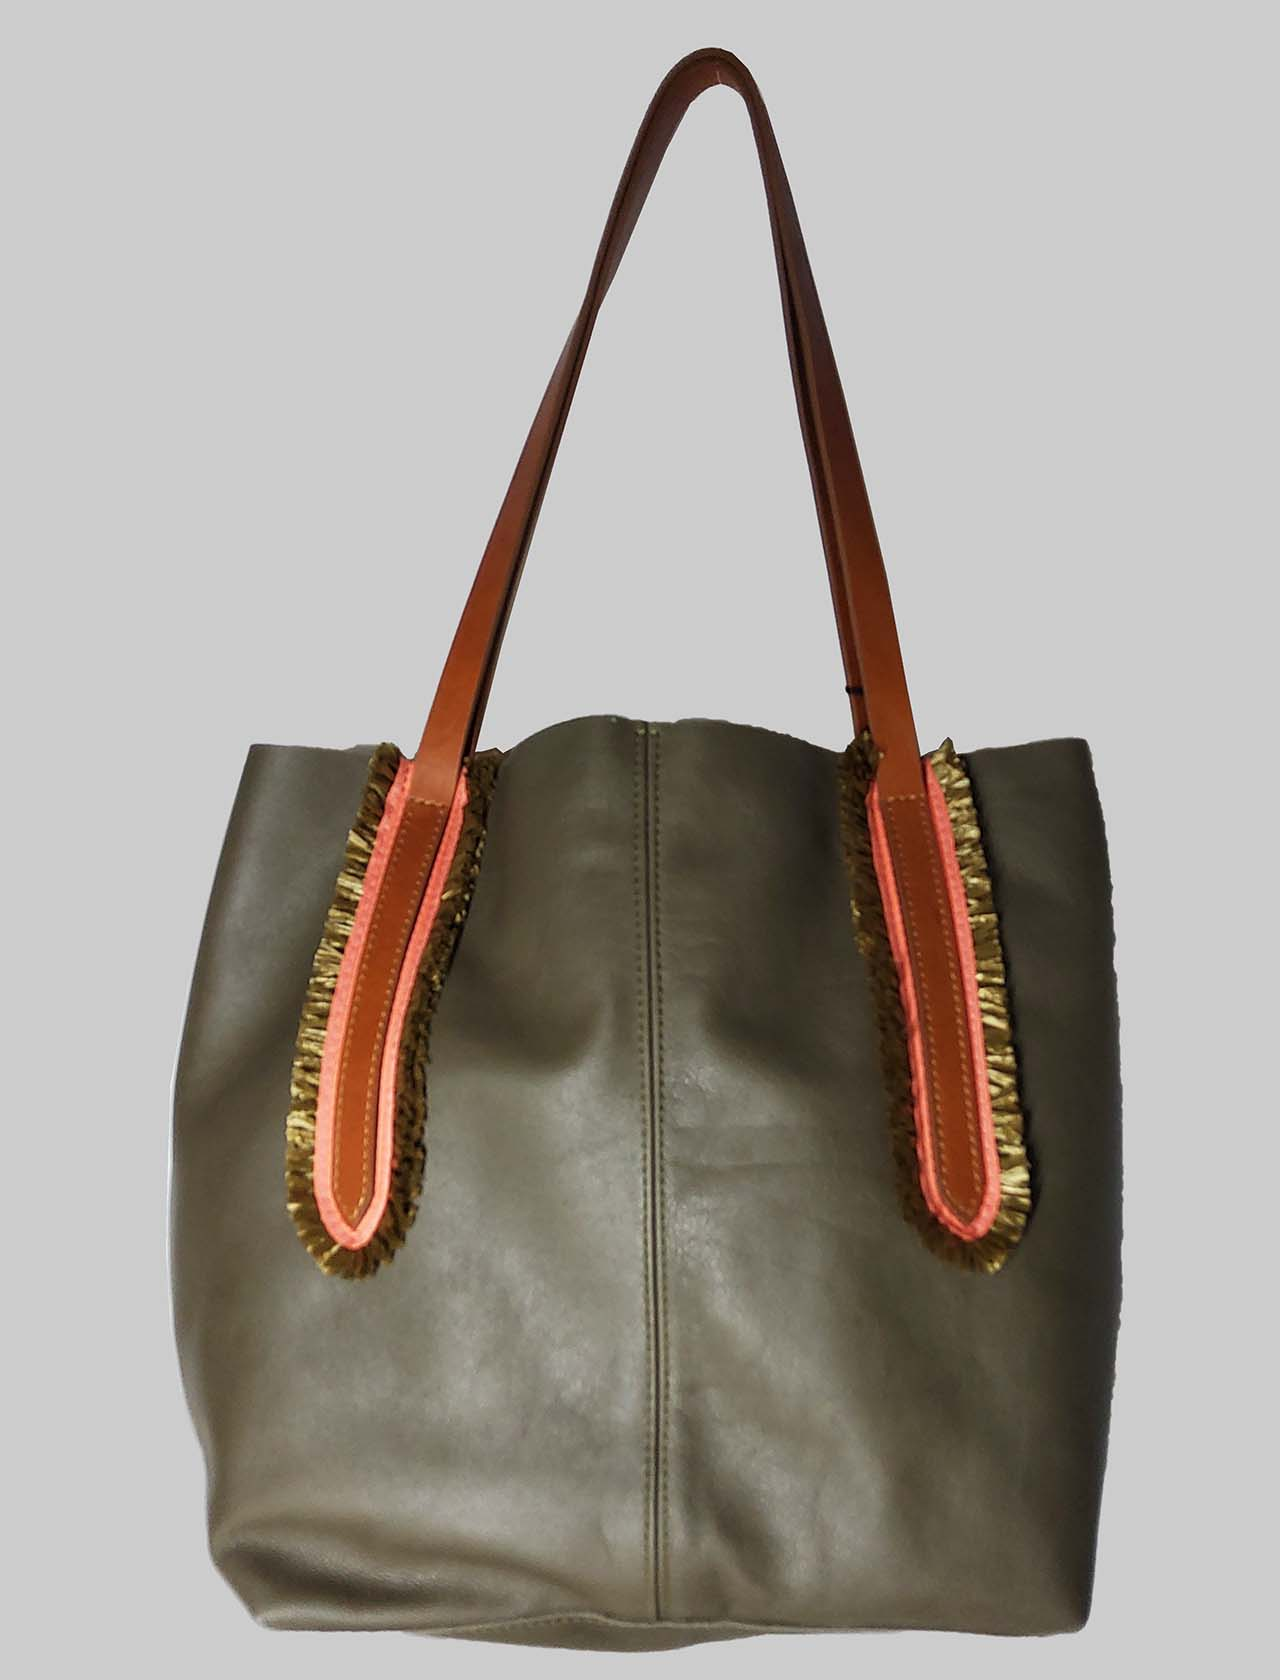 Woman Shoulder Bag in Green Leather with Double Handles in Natural Leather Nanni Milano | Bags and backpacks | NMINI25005